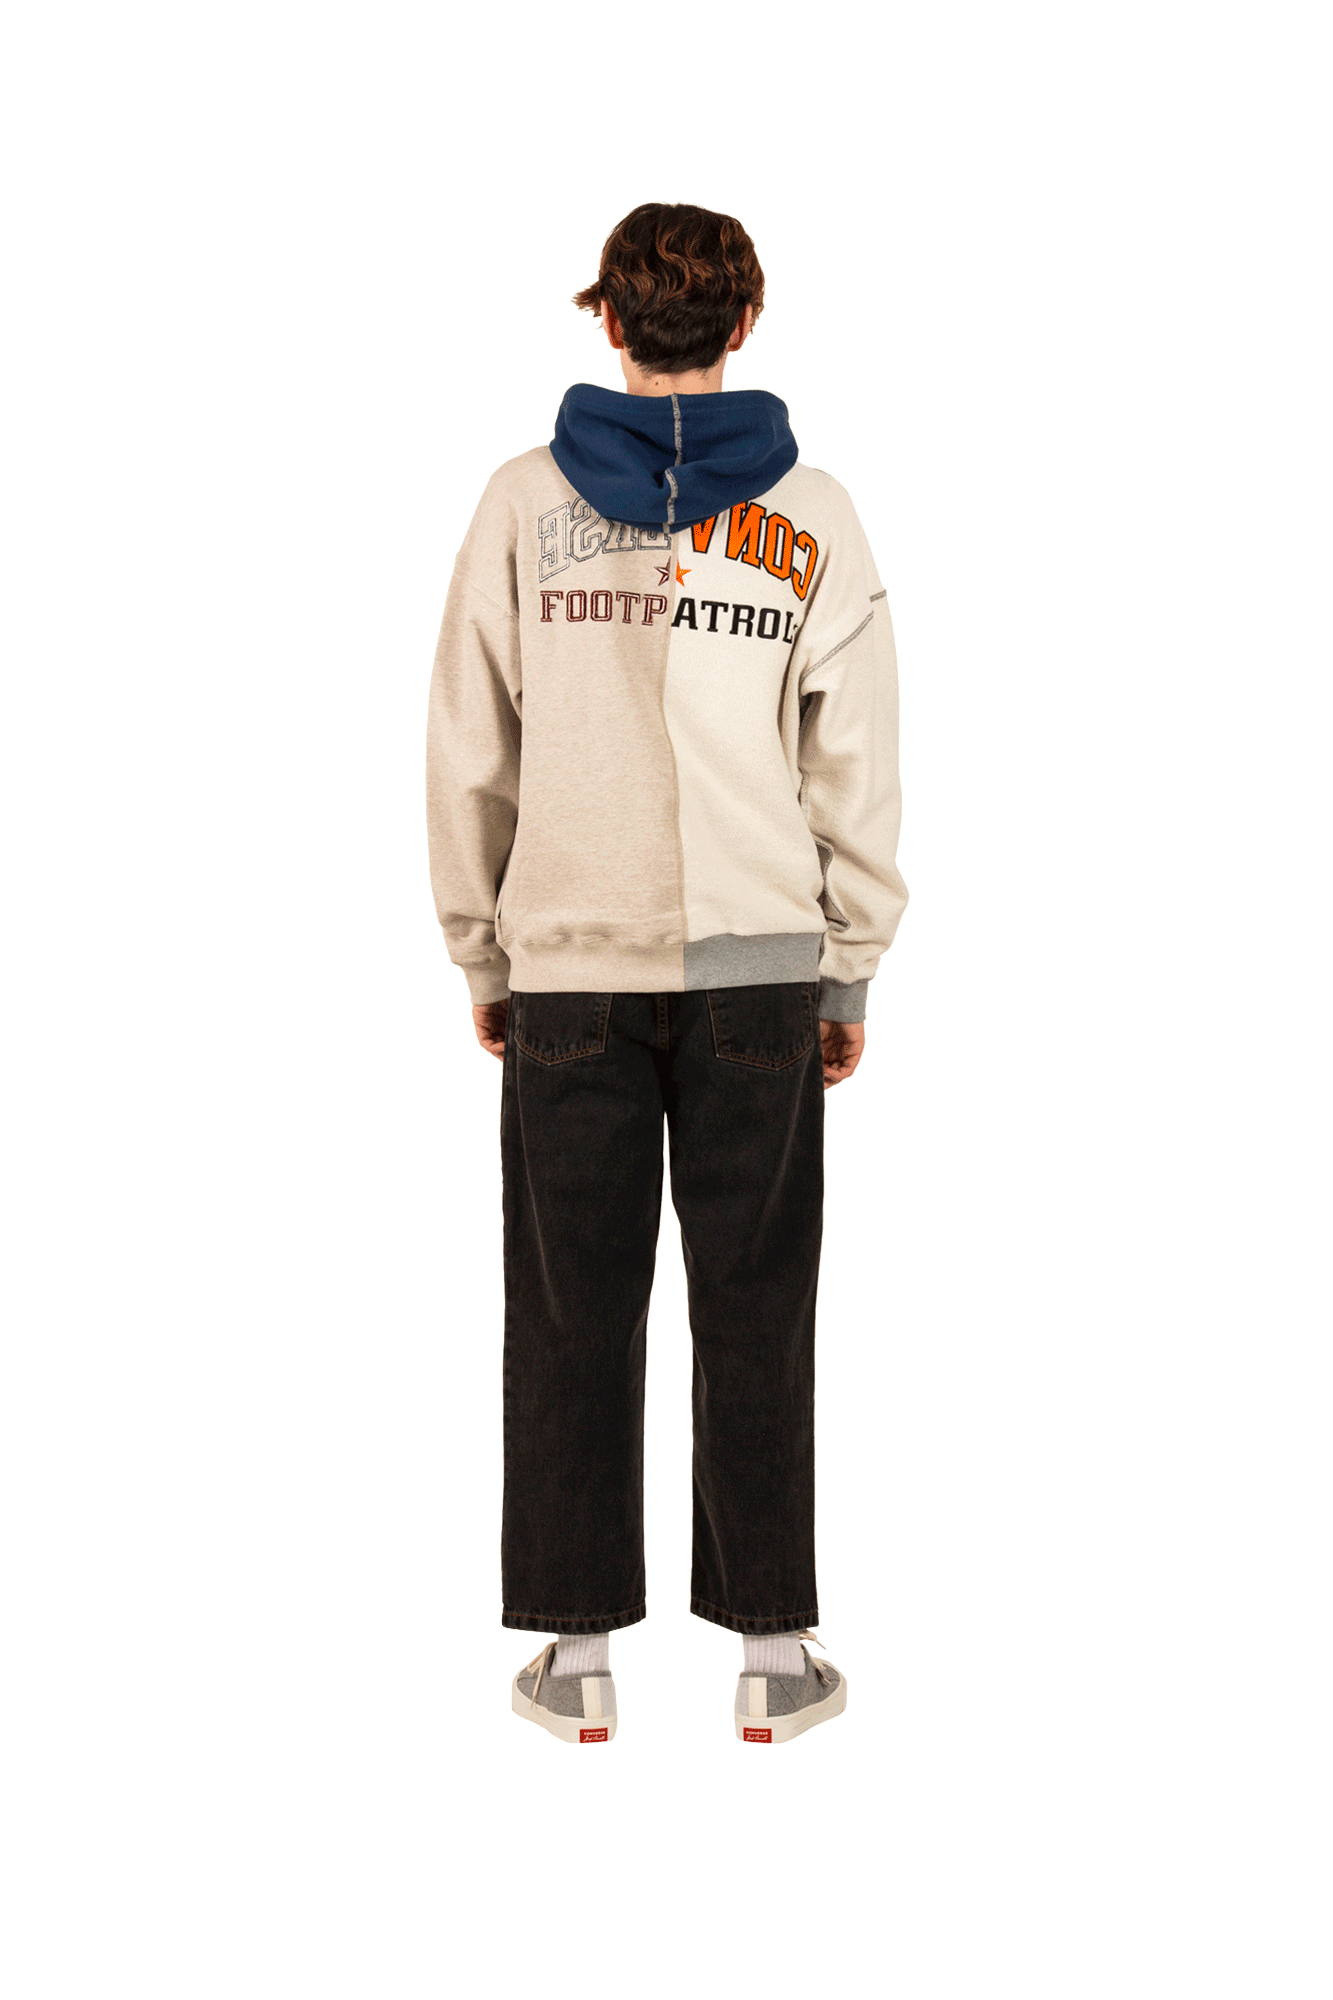 Converse Sweaters Pullover Heater X Footpatrol Brown 10017721#000#121#S - One Block Down